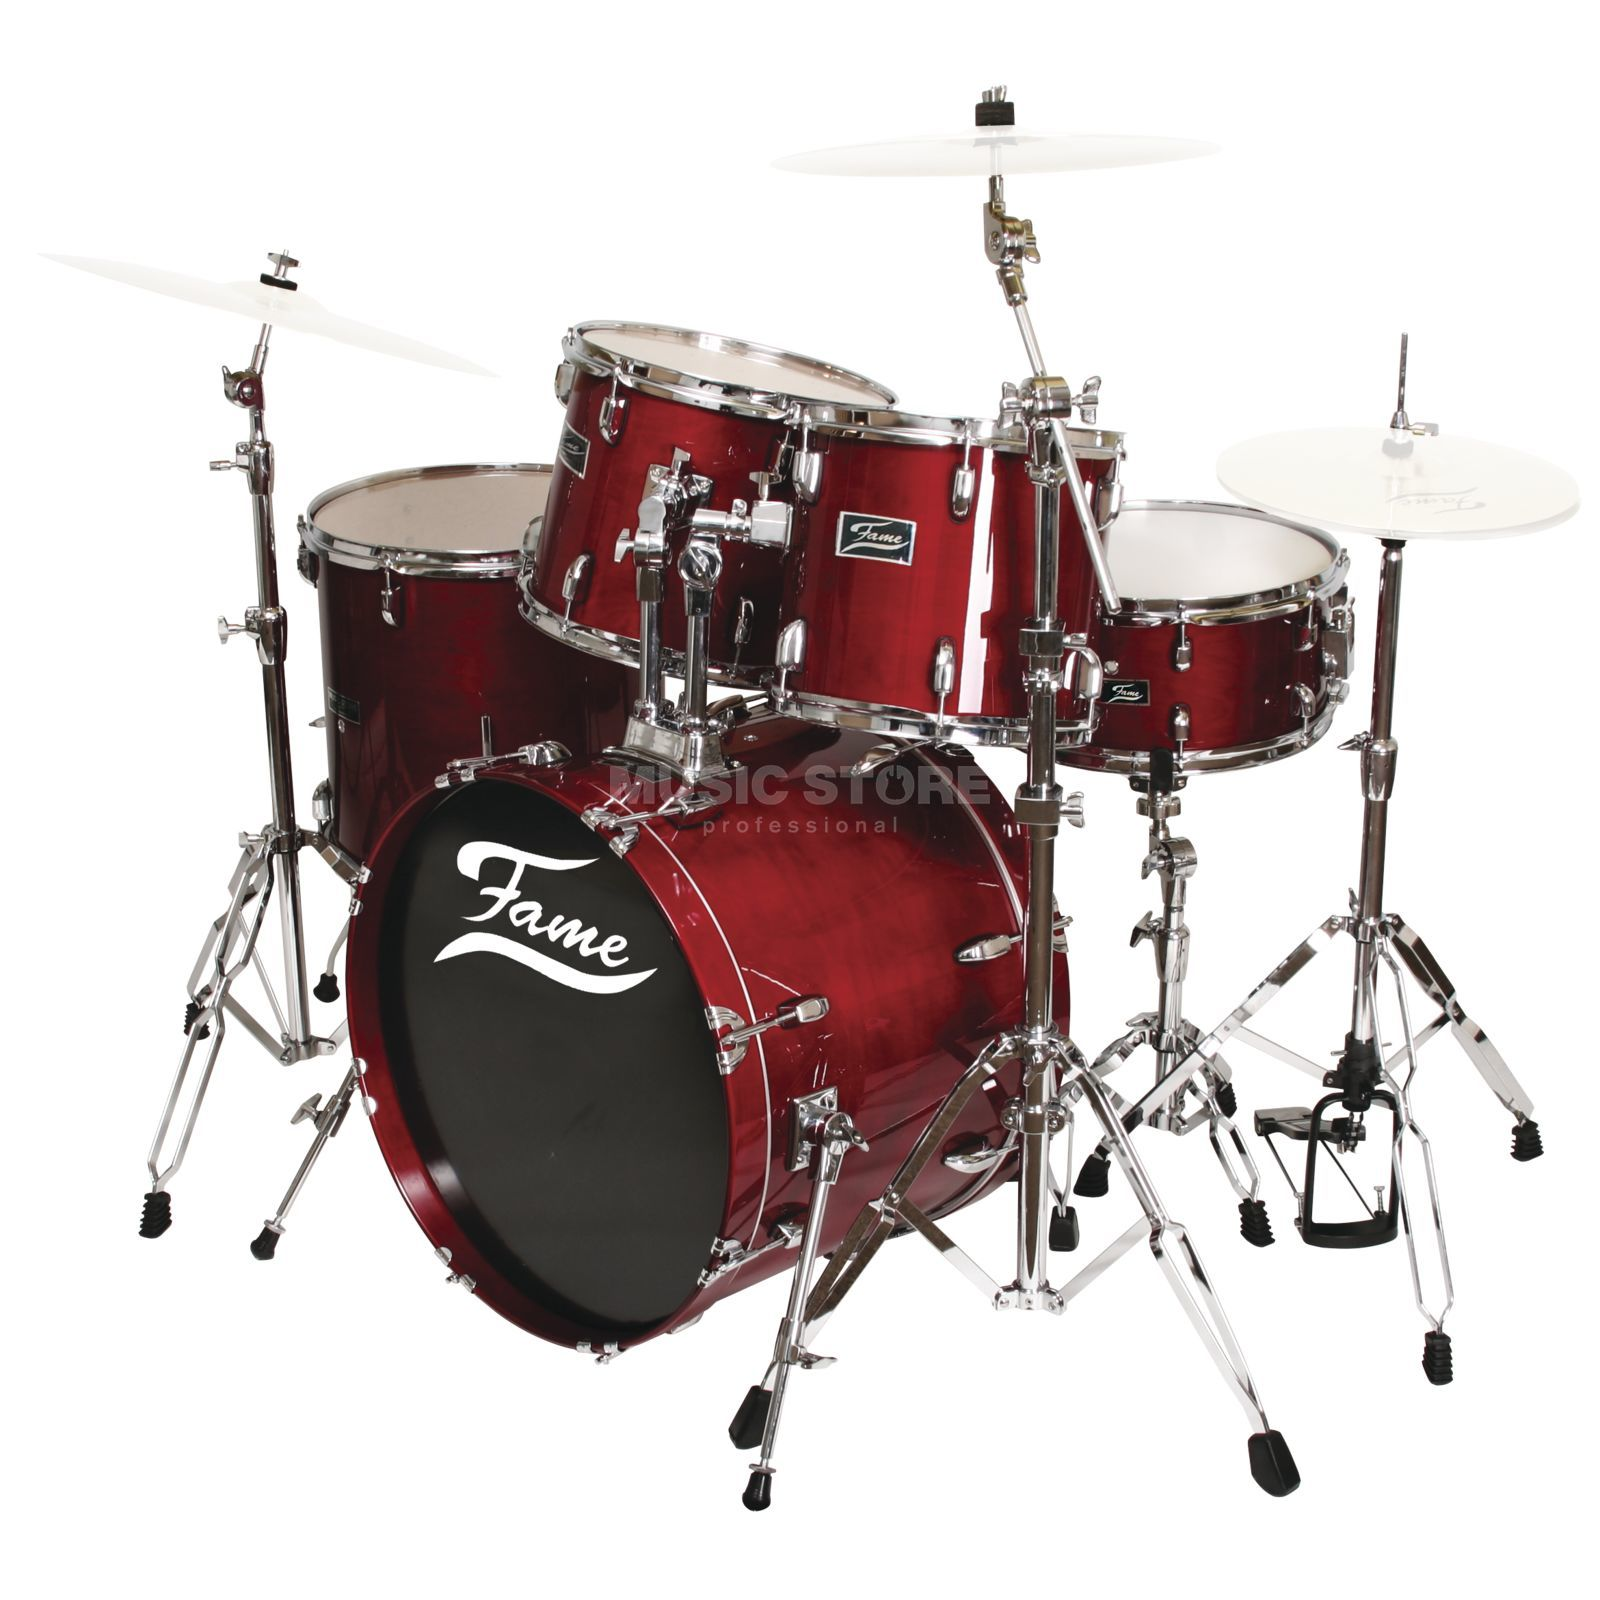 Fame Maple Standard Set 5221, # Red Produktbild